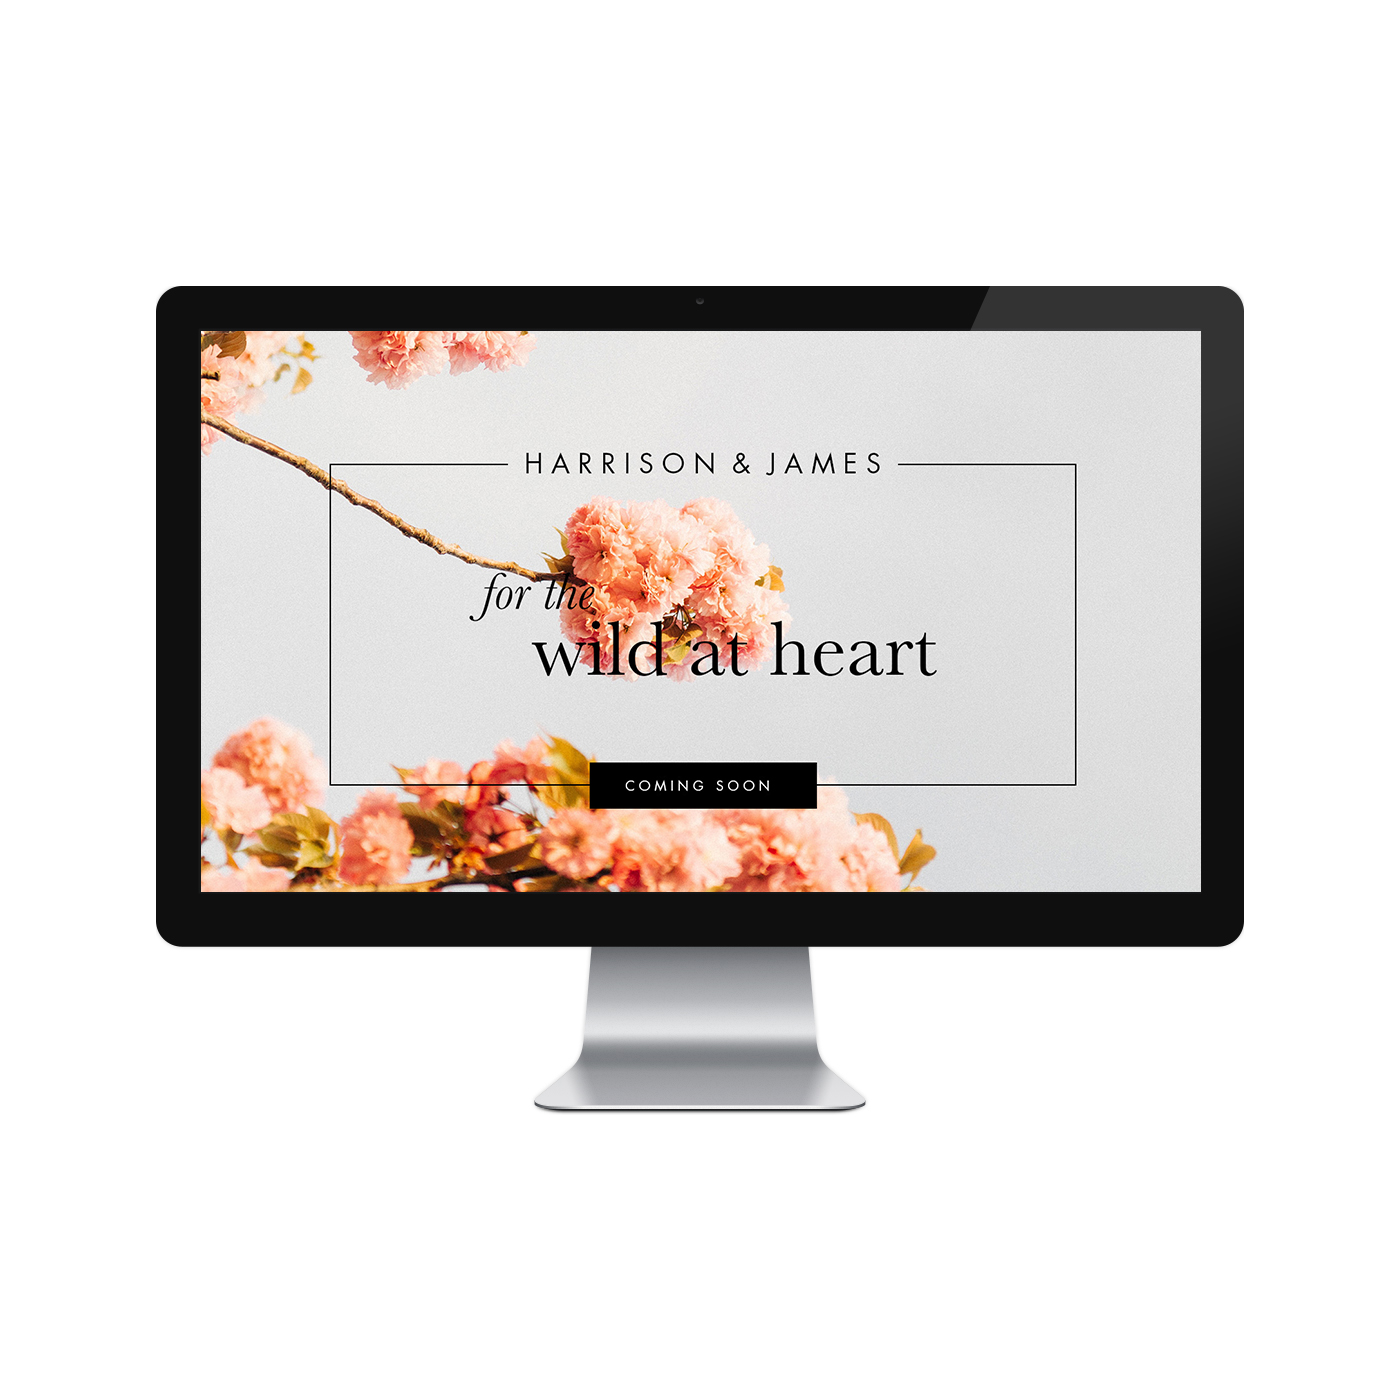 WEB REFRESH - This is one of our most popular services! It's for existing clients only and involves us refreshing the design of your website which we recommend every 6-12months. We touch up the home page and check on your SEO, to make sure that your website is evolving with your business.Investment $550*